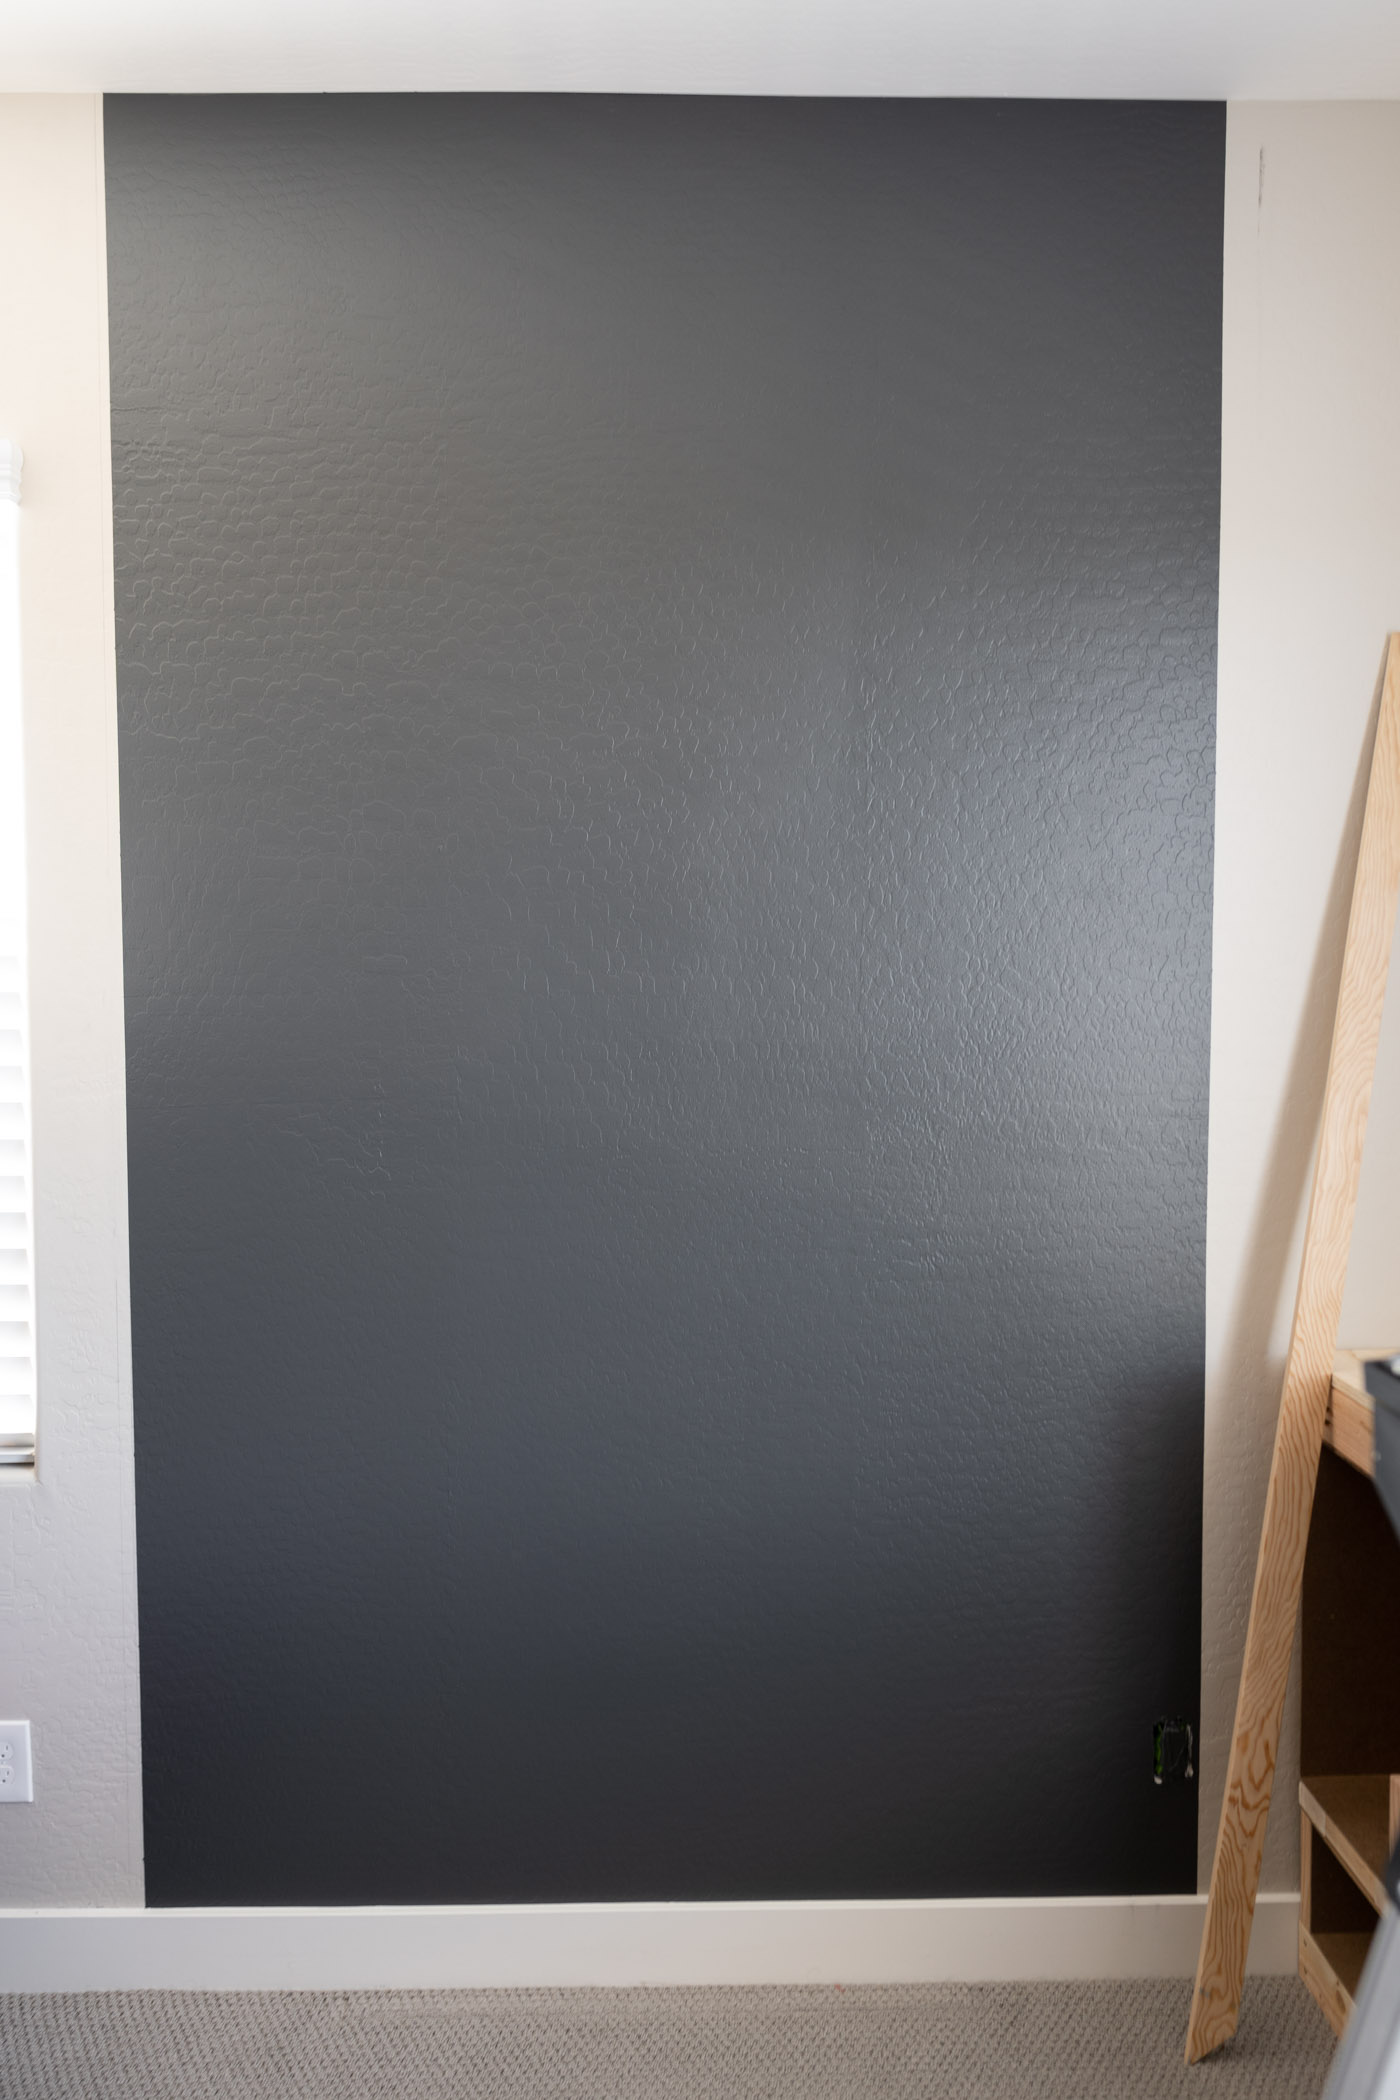 Painted the area for the DIY slat wall in a dark gray paint color.